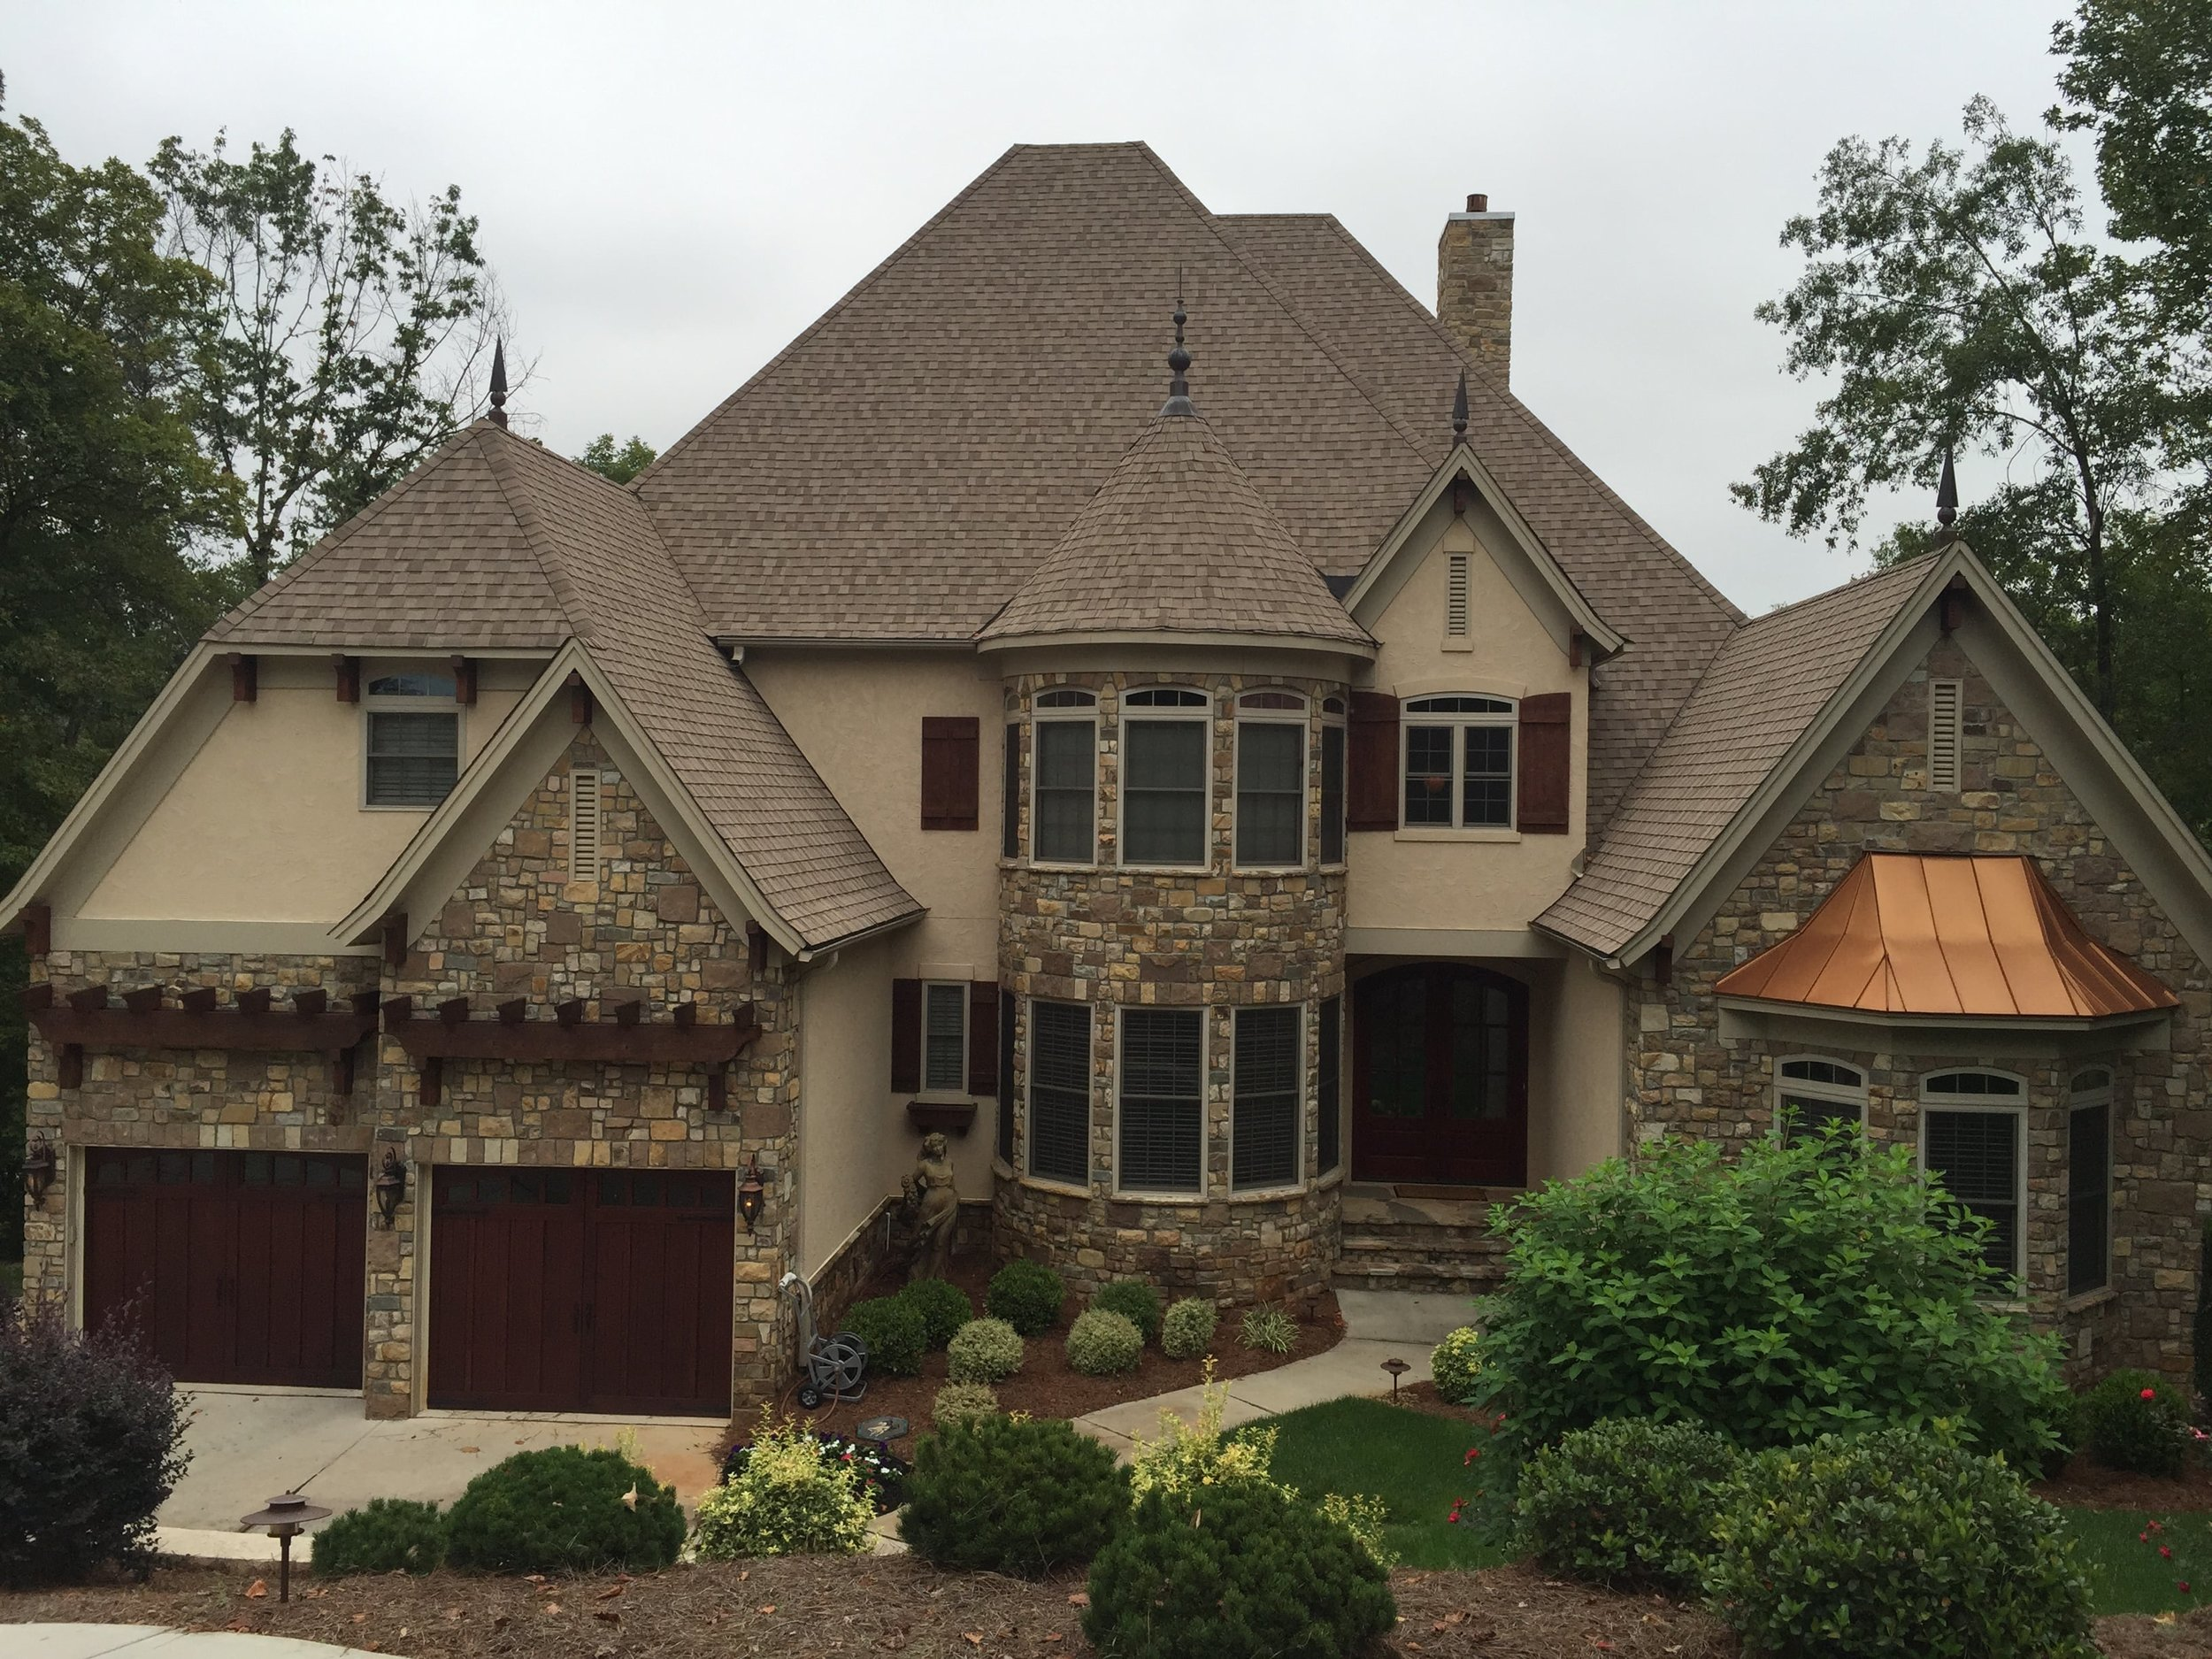 Traditional stone and stucco home with beautiful wood accents.